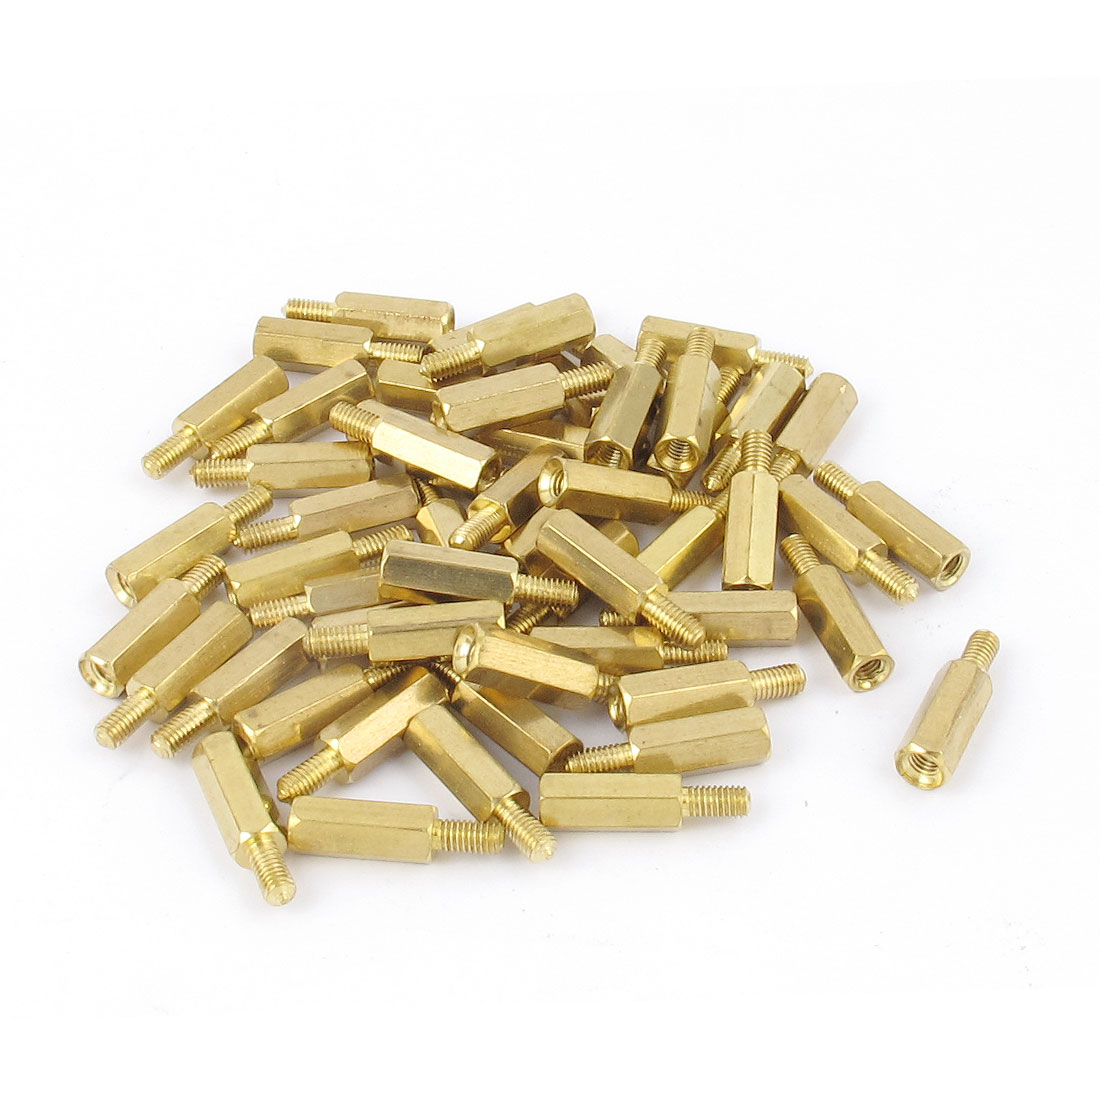 50Pcs M3 Male/Female Brass Hex Stand-Off PCB Spacer Pillar Screw 12mm